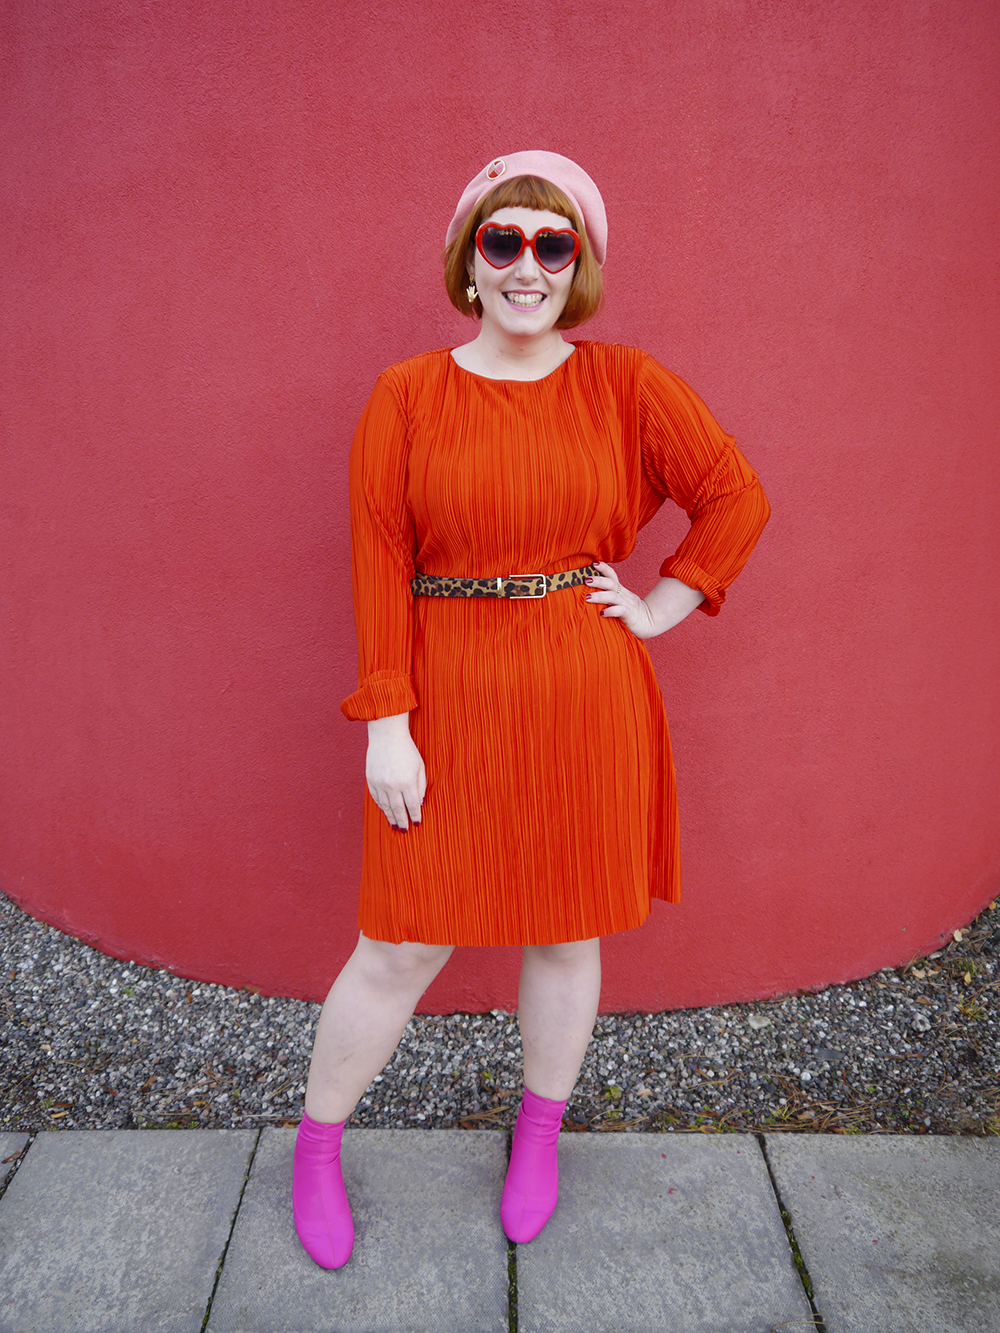 Colourful outfit with heart sunglasses, pink berret, red dress and pink boots